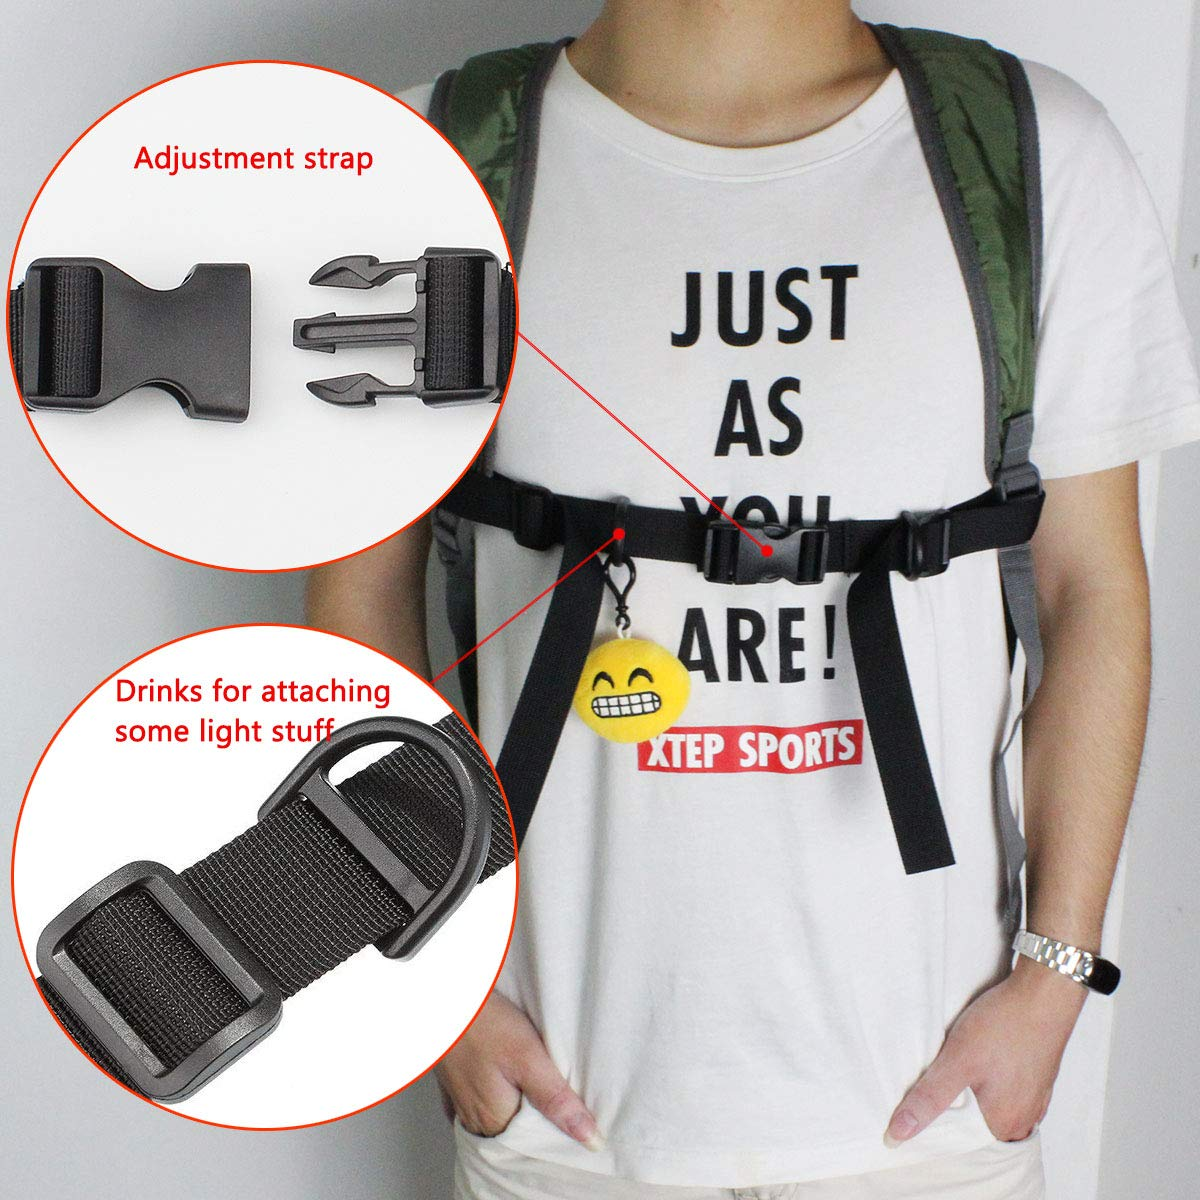 Black Hysagtek 4 Pcs Backpack Chest Strap Adjustable Sternum Strap Backpack Waist Belt for Hiking and Jogging 2.5cm// 1inch